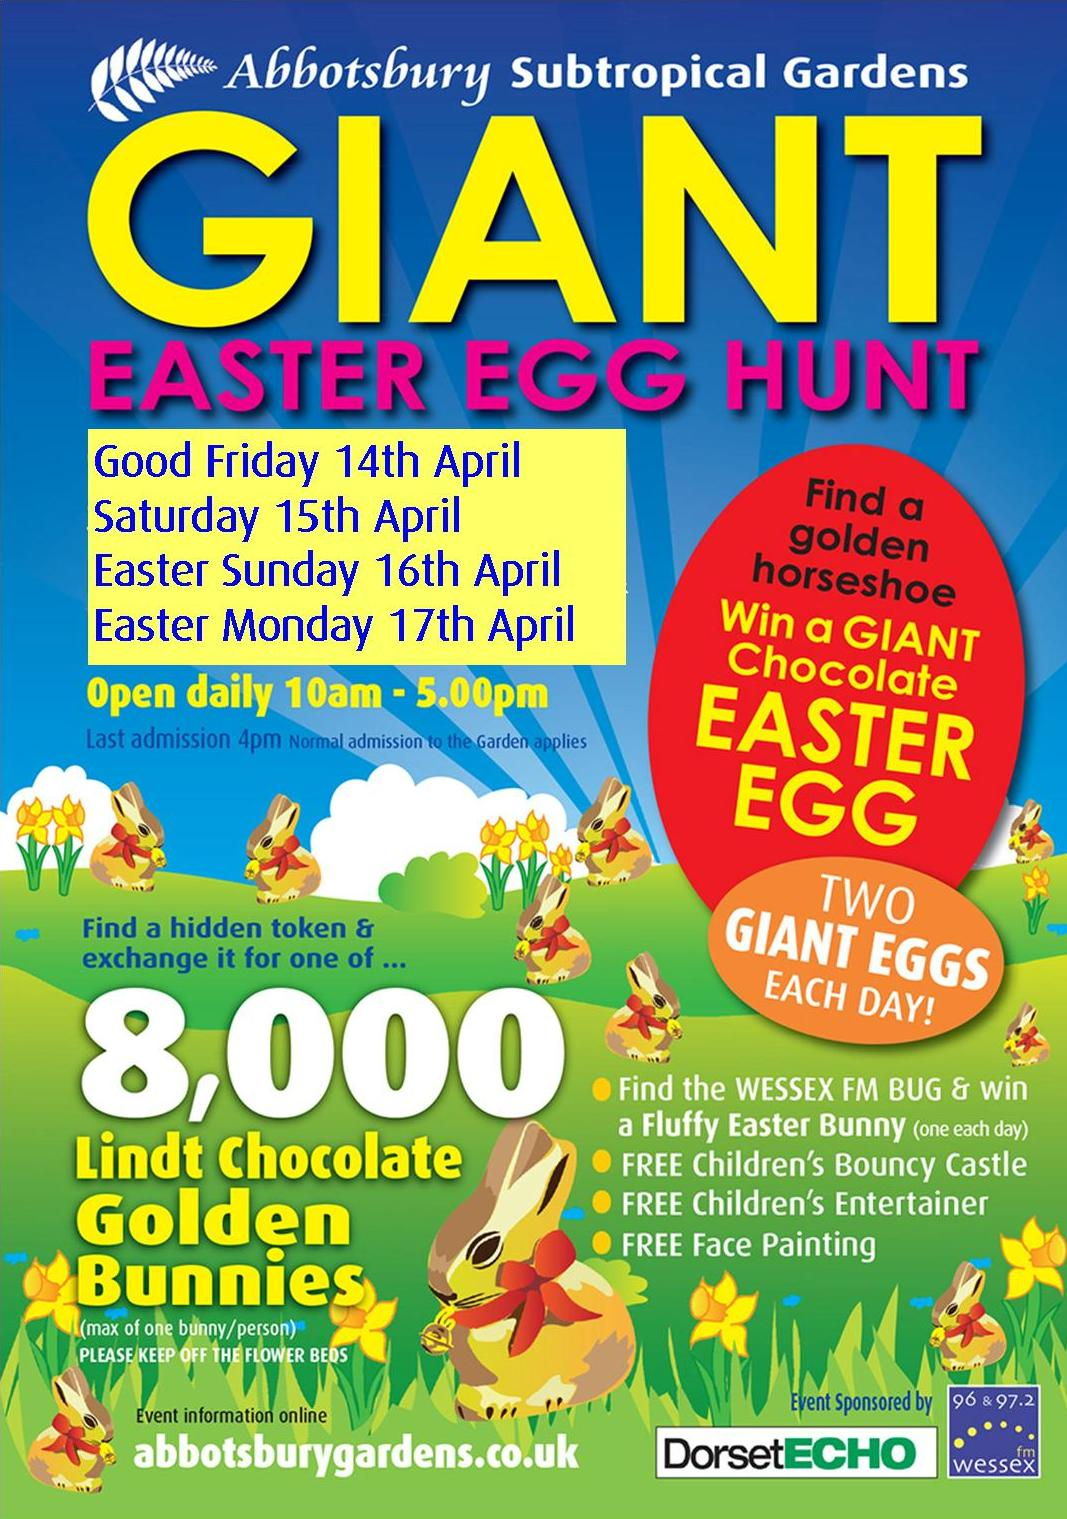 THE GIANT EASTER EGG HUNT - Warren House Bed and Breakfast